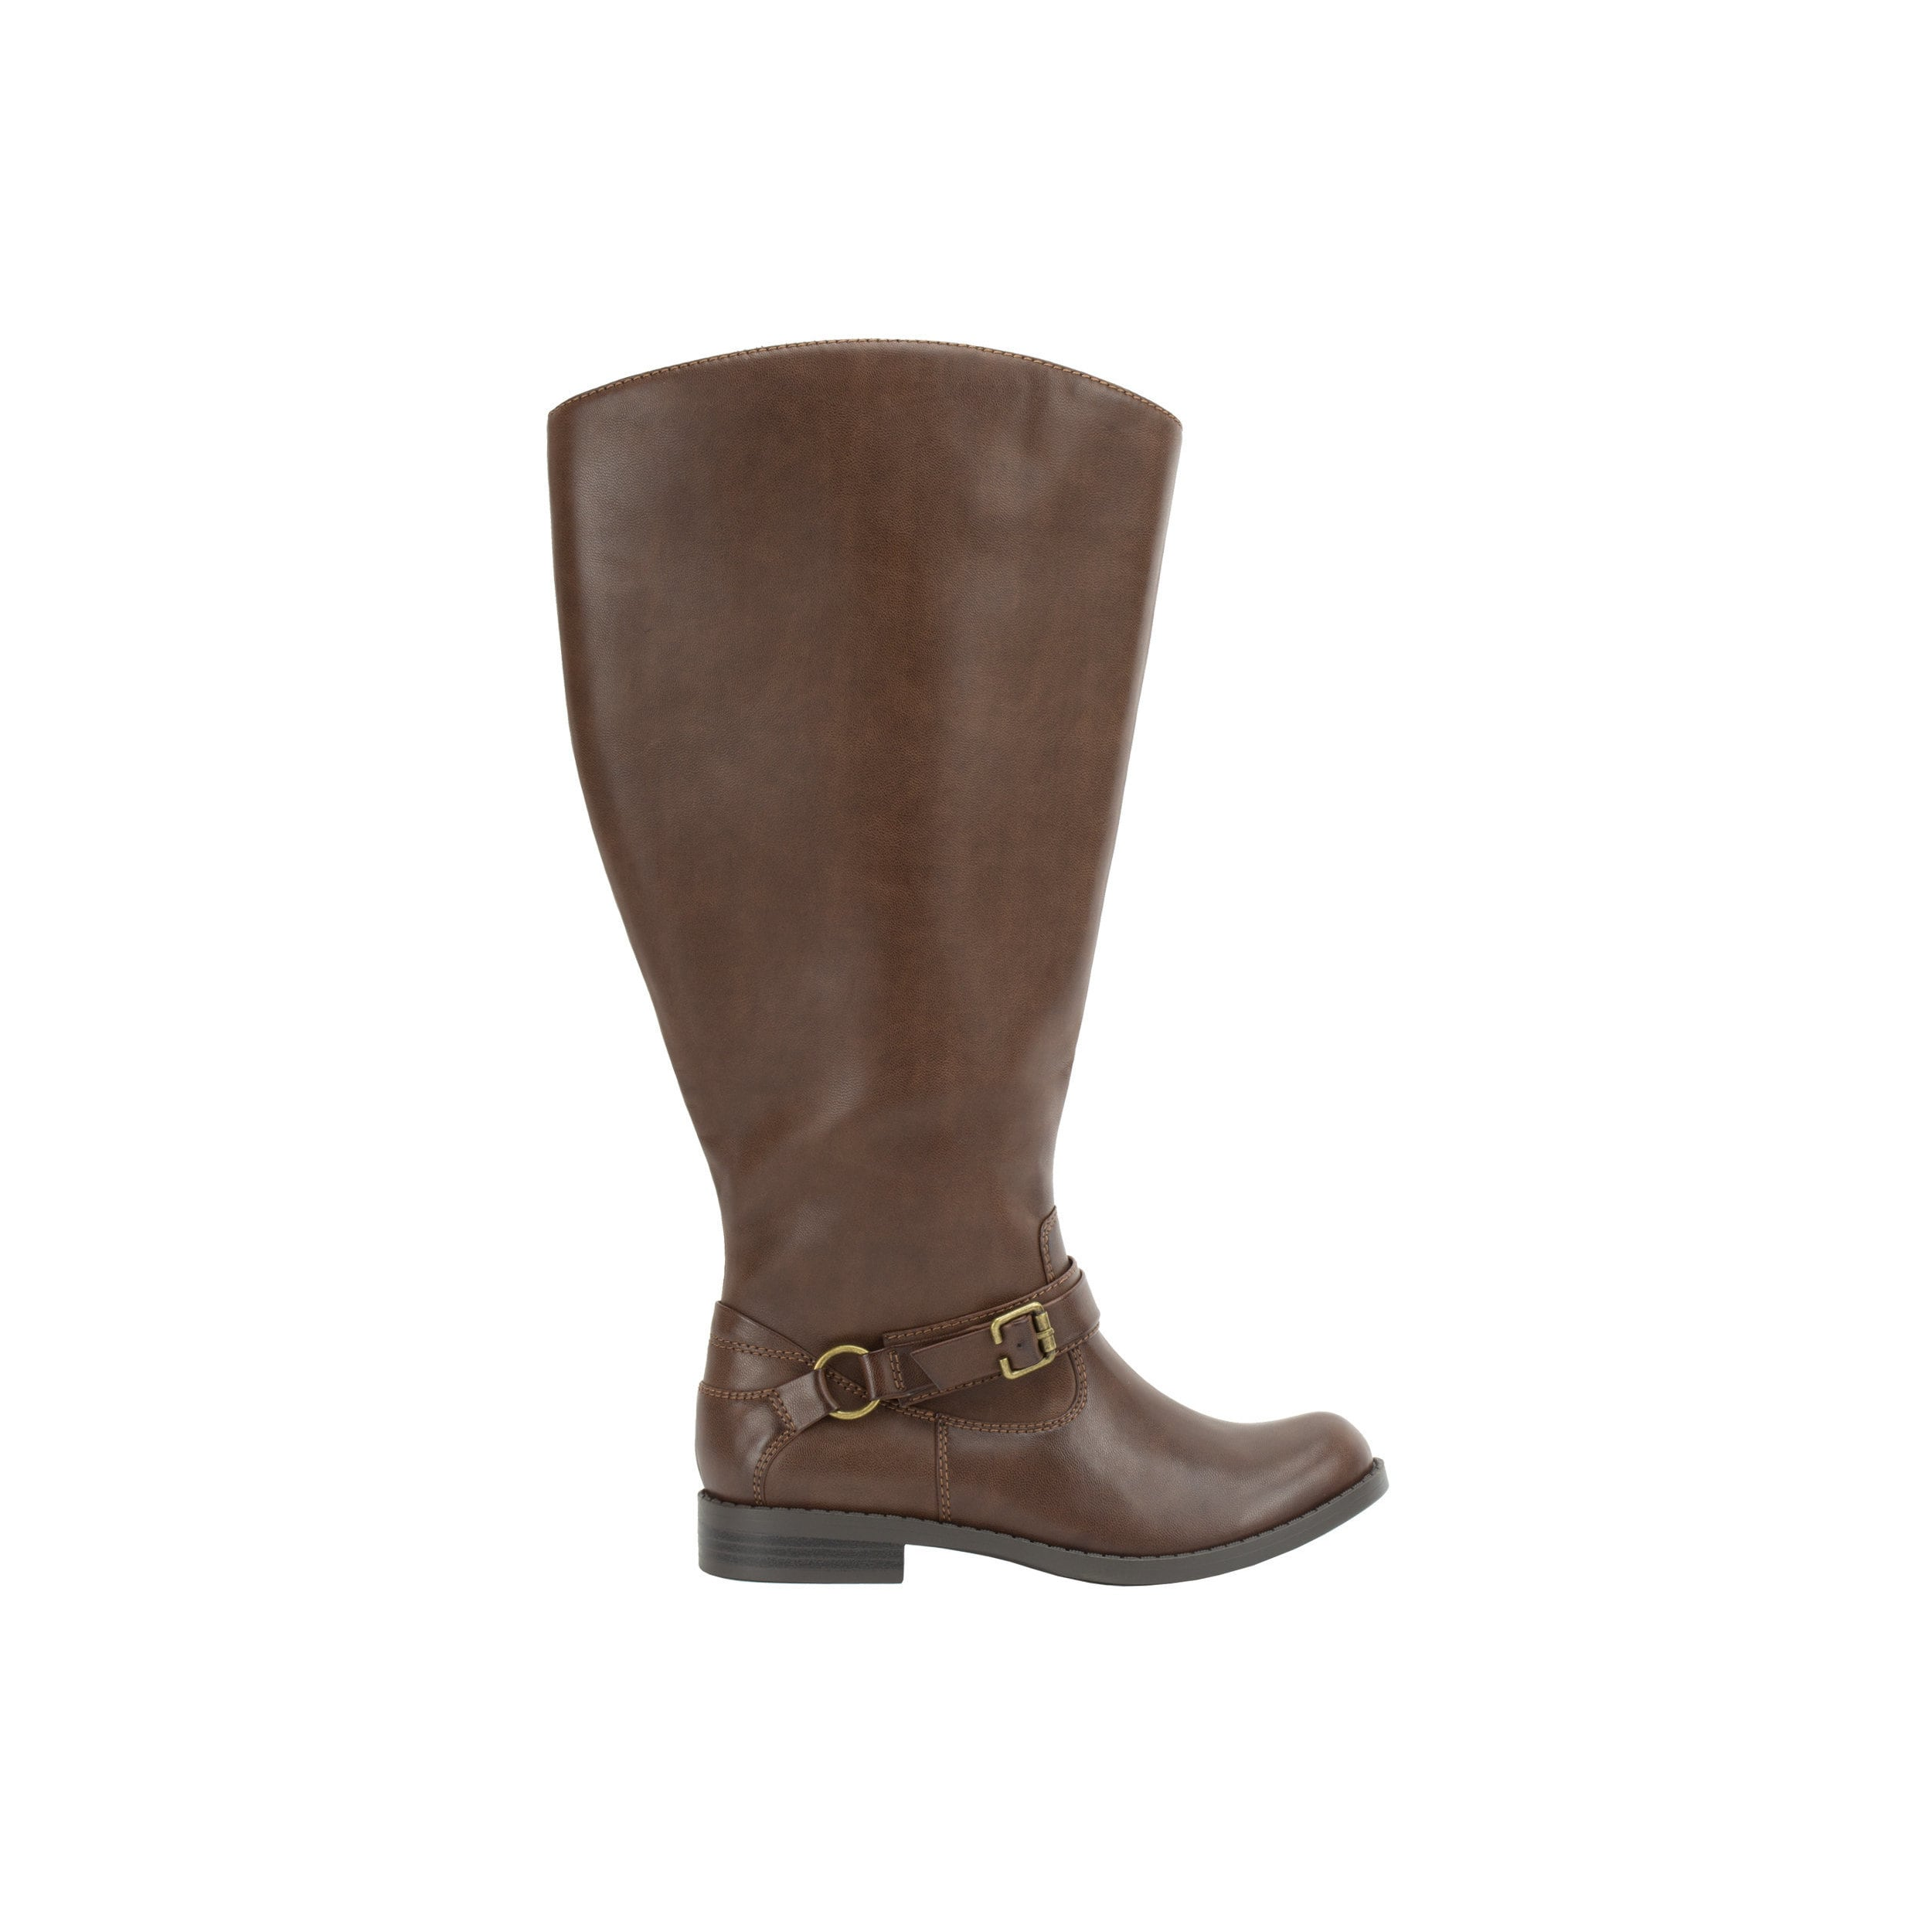 c161d7306 Shop Easy Street Women's Quinn Plus Plus Extra Wide Calf Boot (Brown  Burnished) - Ships To Canada - Overstock - 16817392